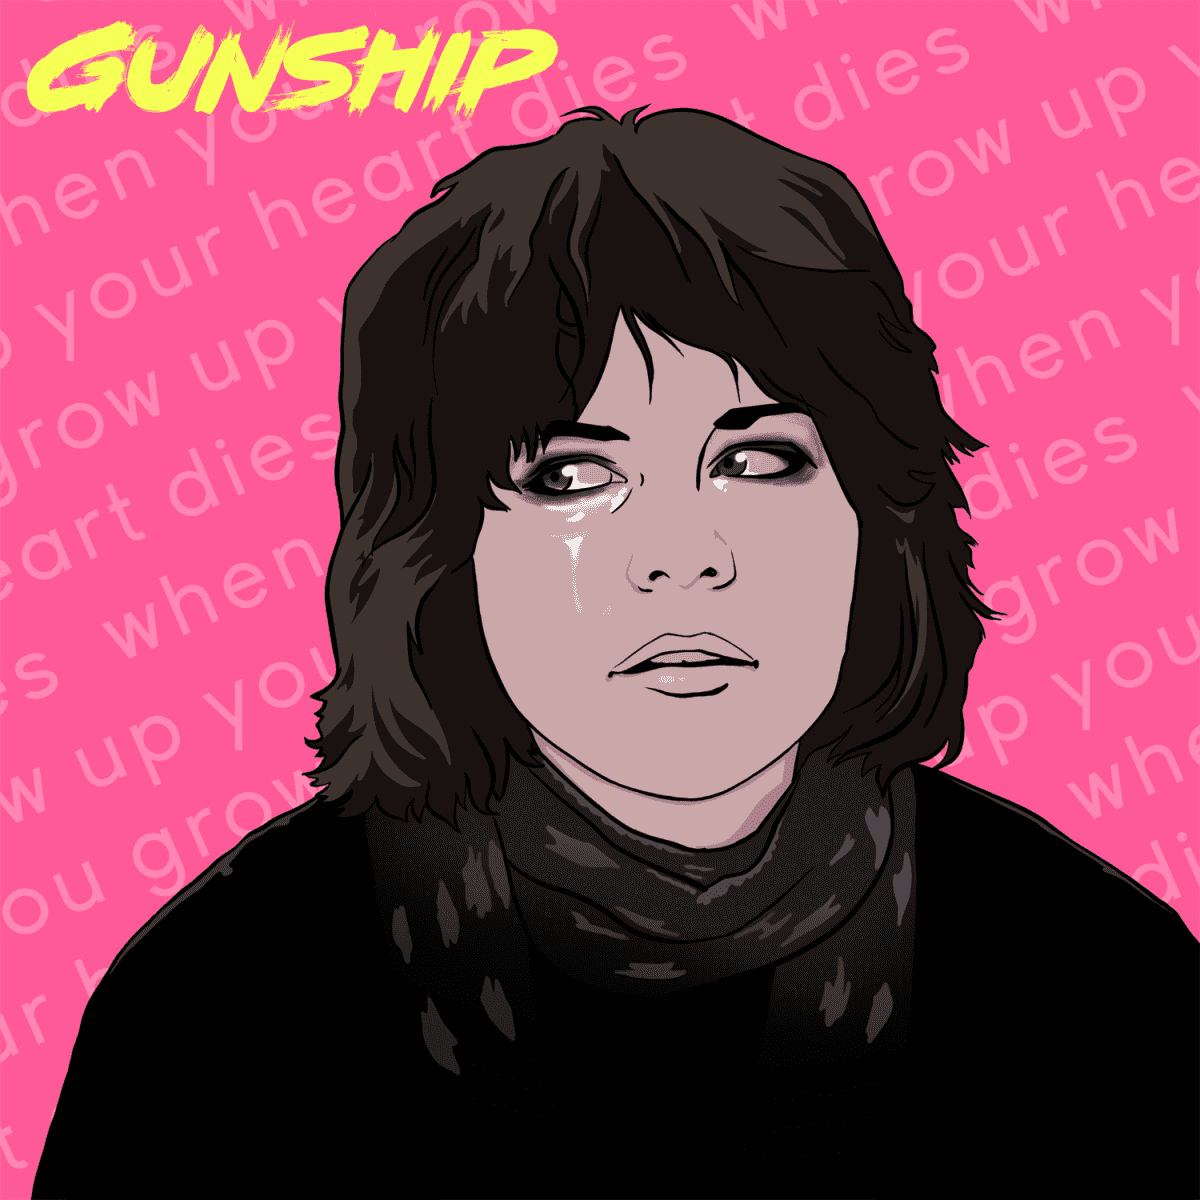 GUNSHIPHeartDiesCover01 1500x1500 - GUNSHIP - When You Grow Up, Your Heart Dies